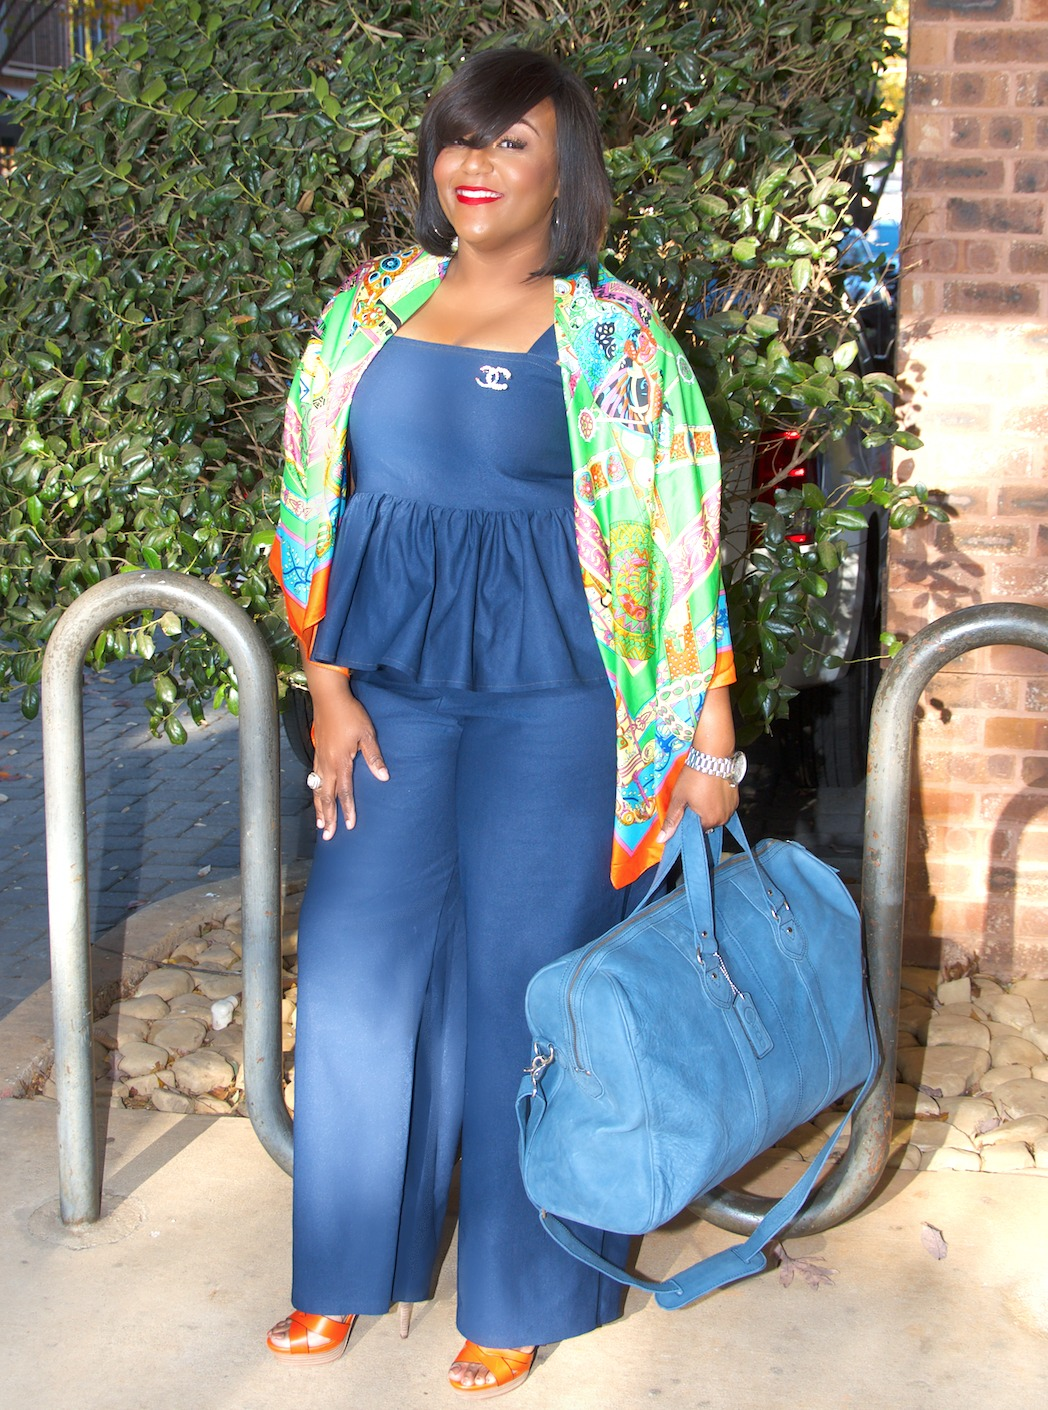 Cargo bags by cynthia bailey